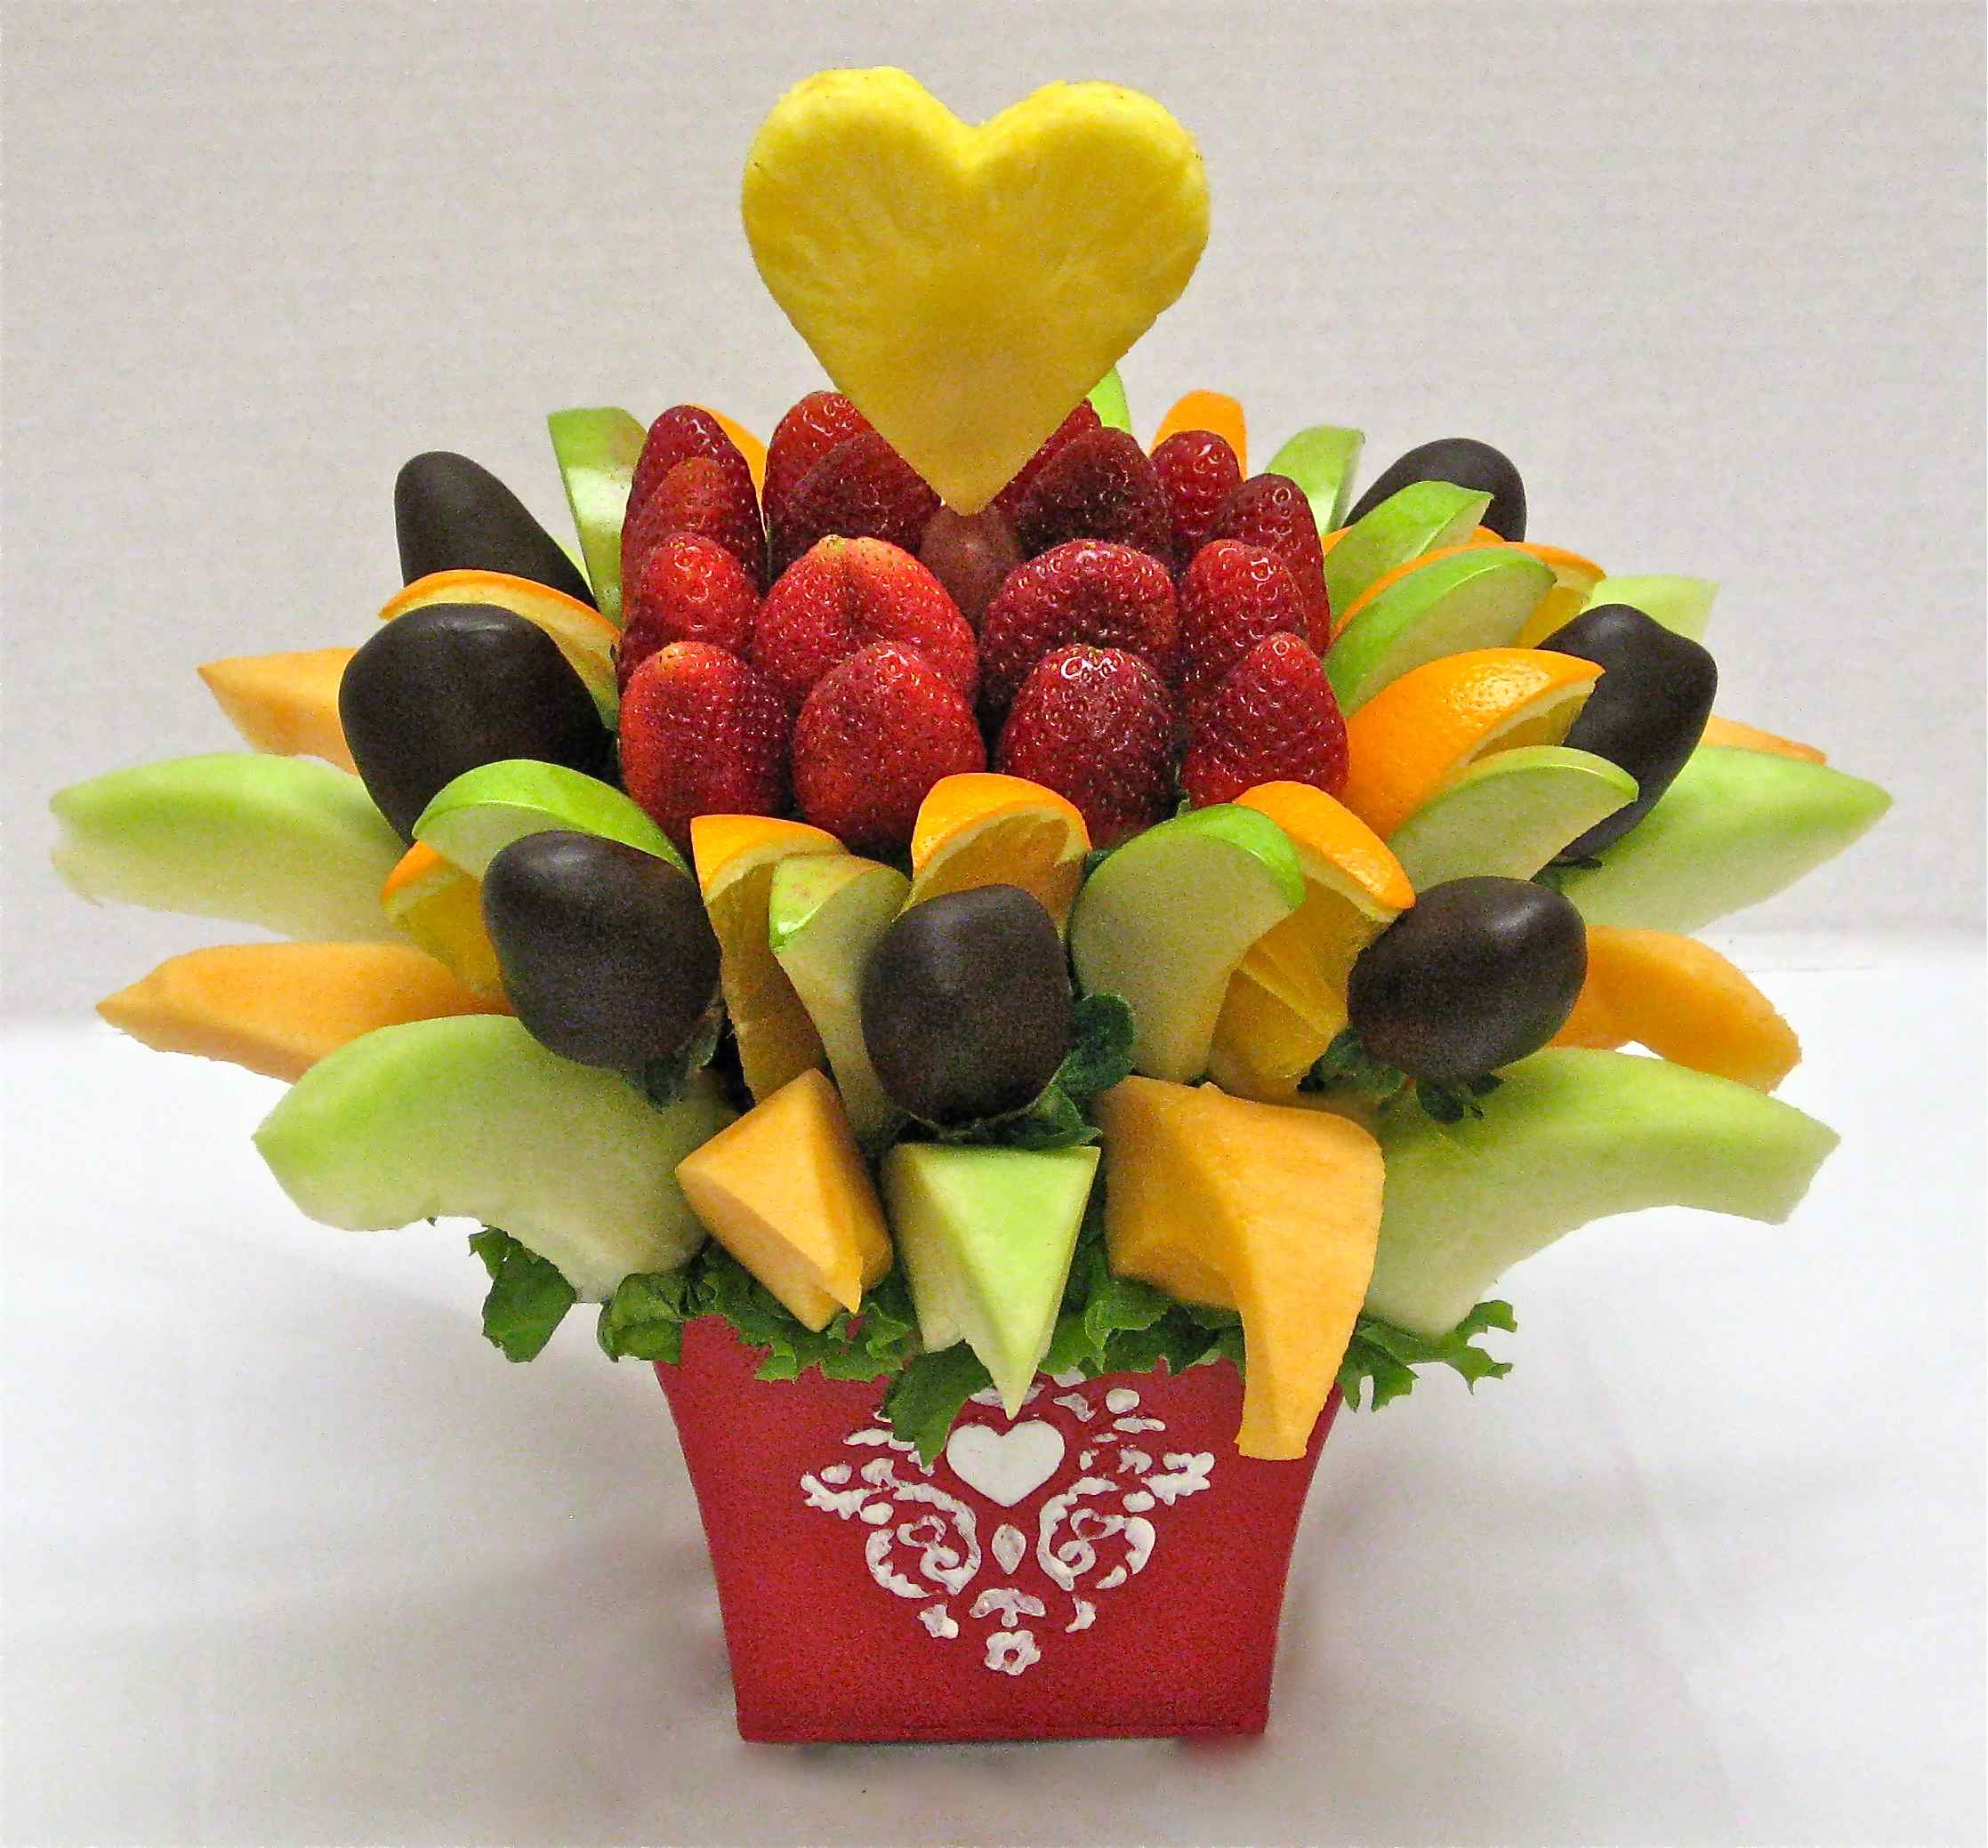 Fruit Baskets Make Your Own Edible Fruit Basket Crazeedaisee